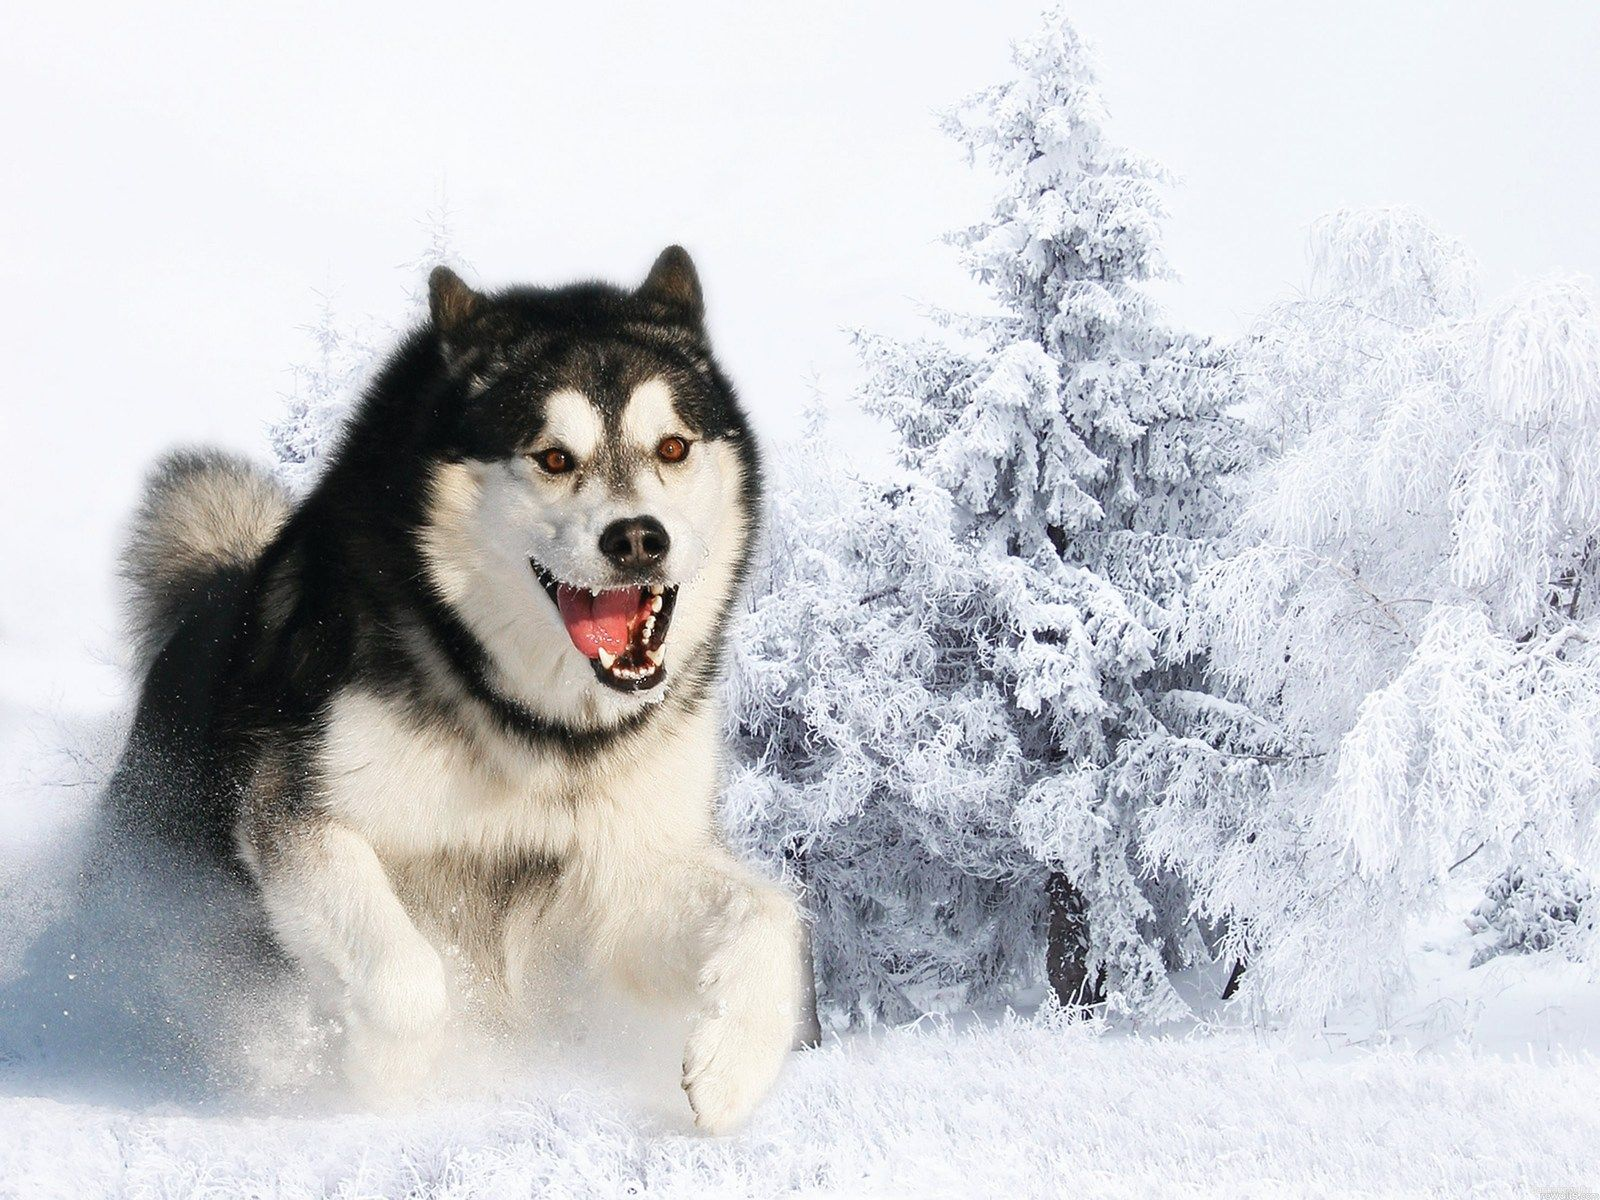 Siberian Husky Has A Very Dense Double Layered Coat That Helps